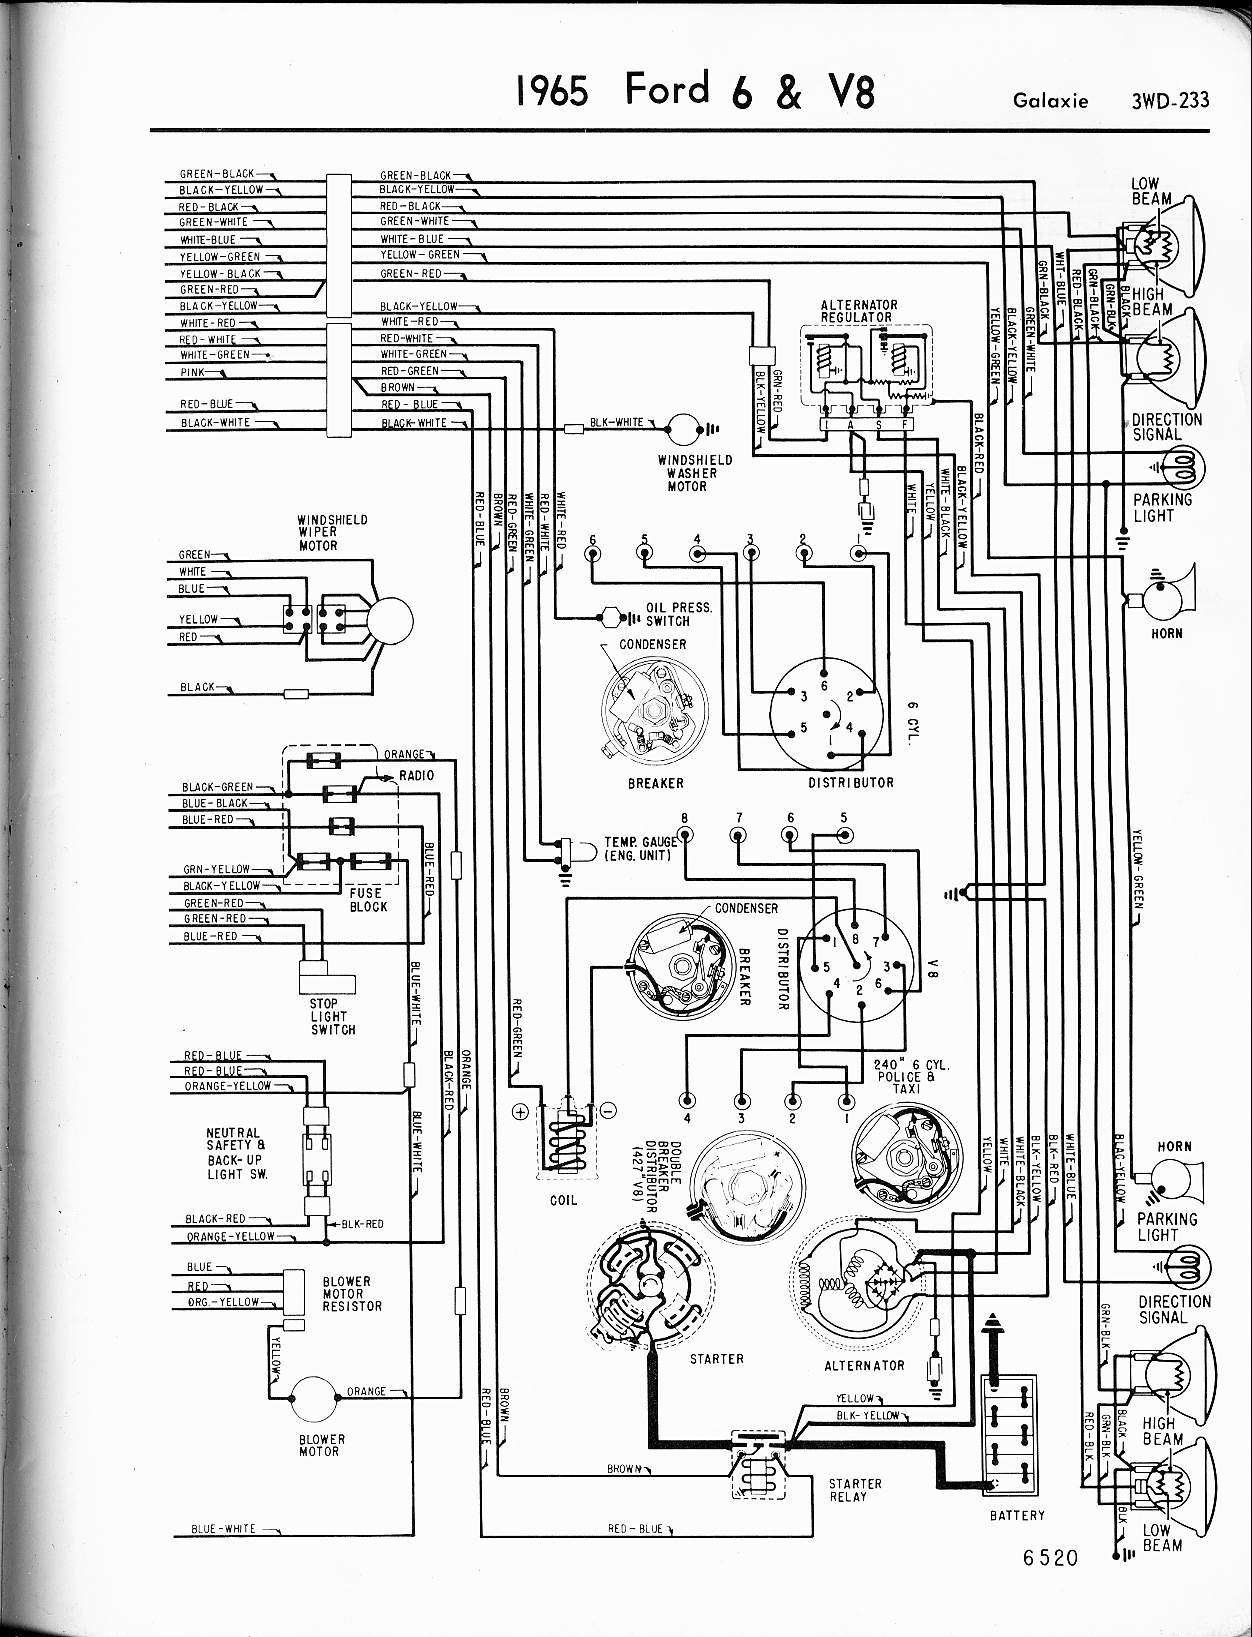 Marvelous 64 Cj5 Wiring Diagram Wiring Diagram Database Wiring Digital Resources Remcakbiperorg